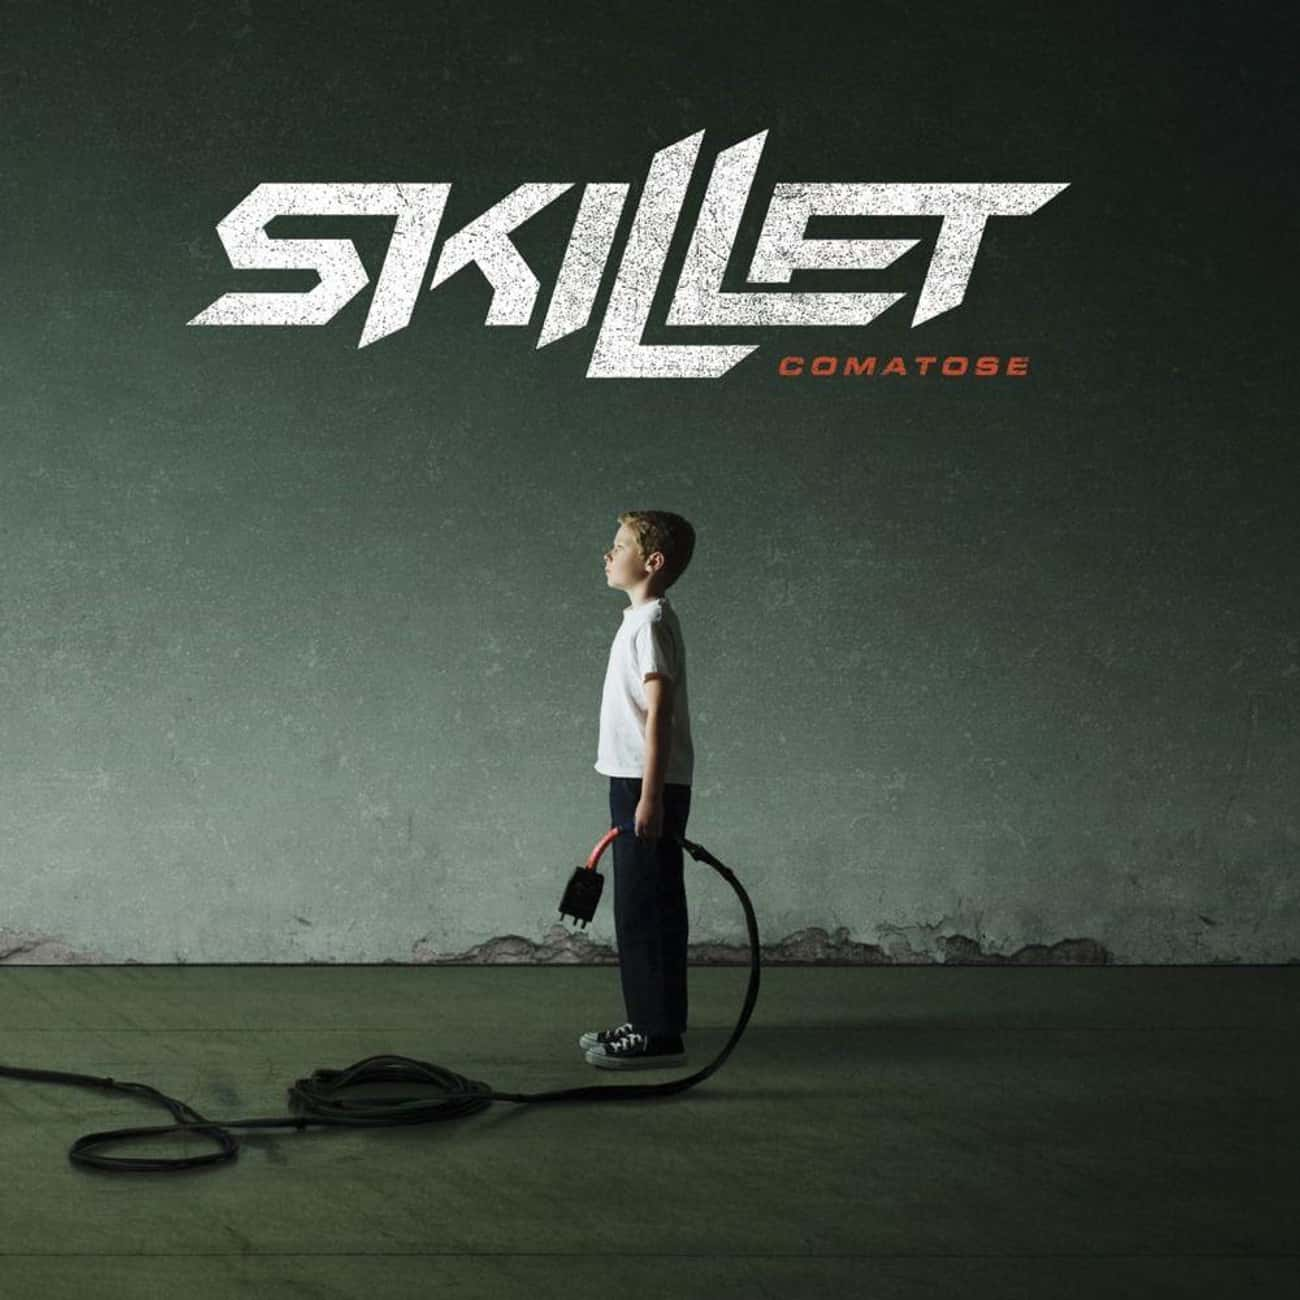 Comatose is listed (or ranked) 1 on the list The Best Skillet Albums of All Time